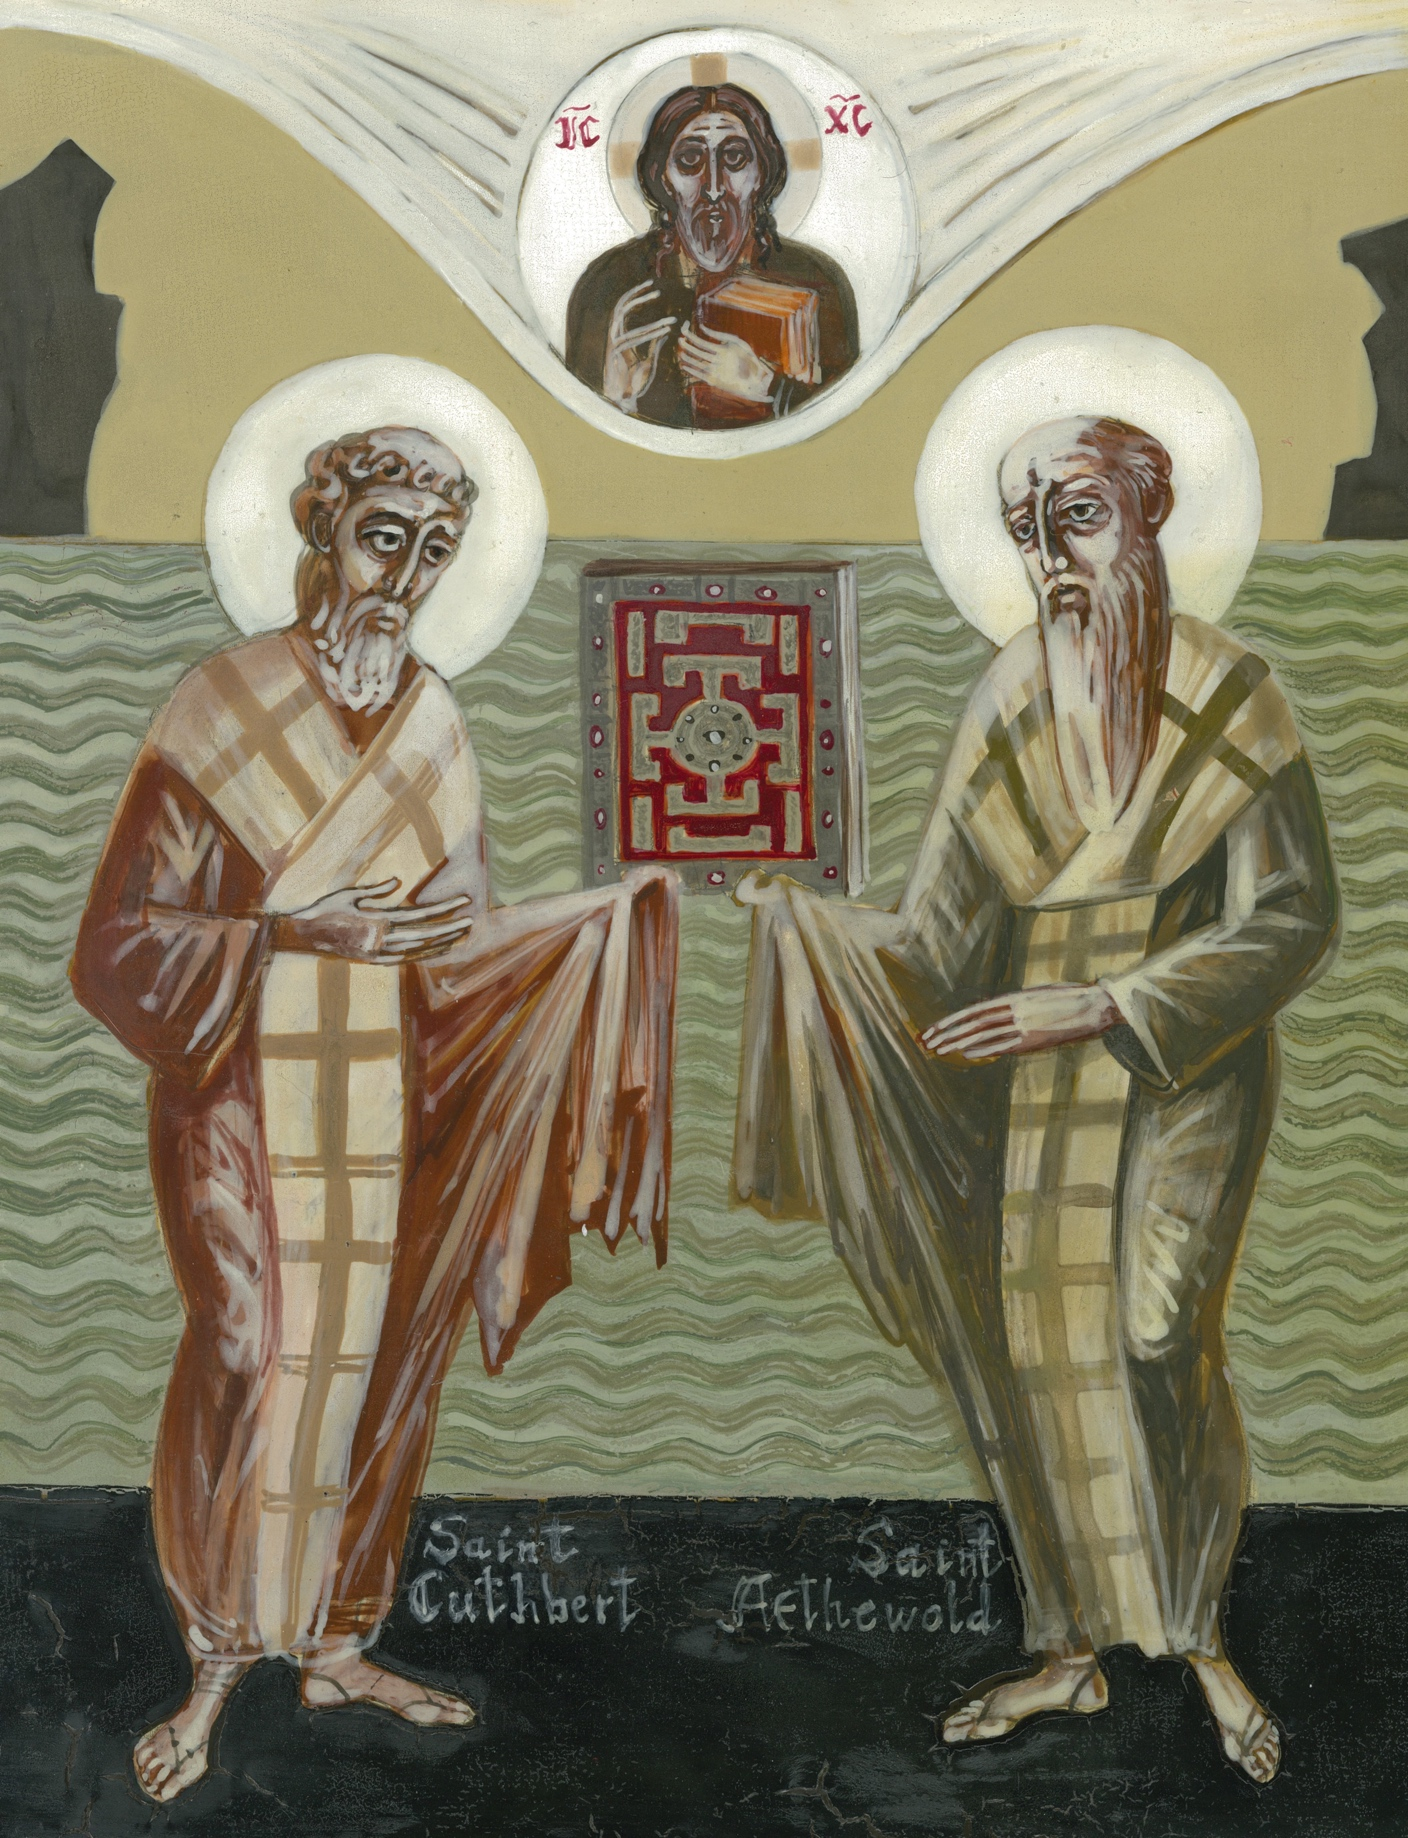 Icon of Ss. Cuthbert and Aethelwold